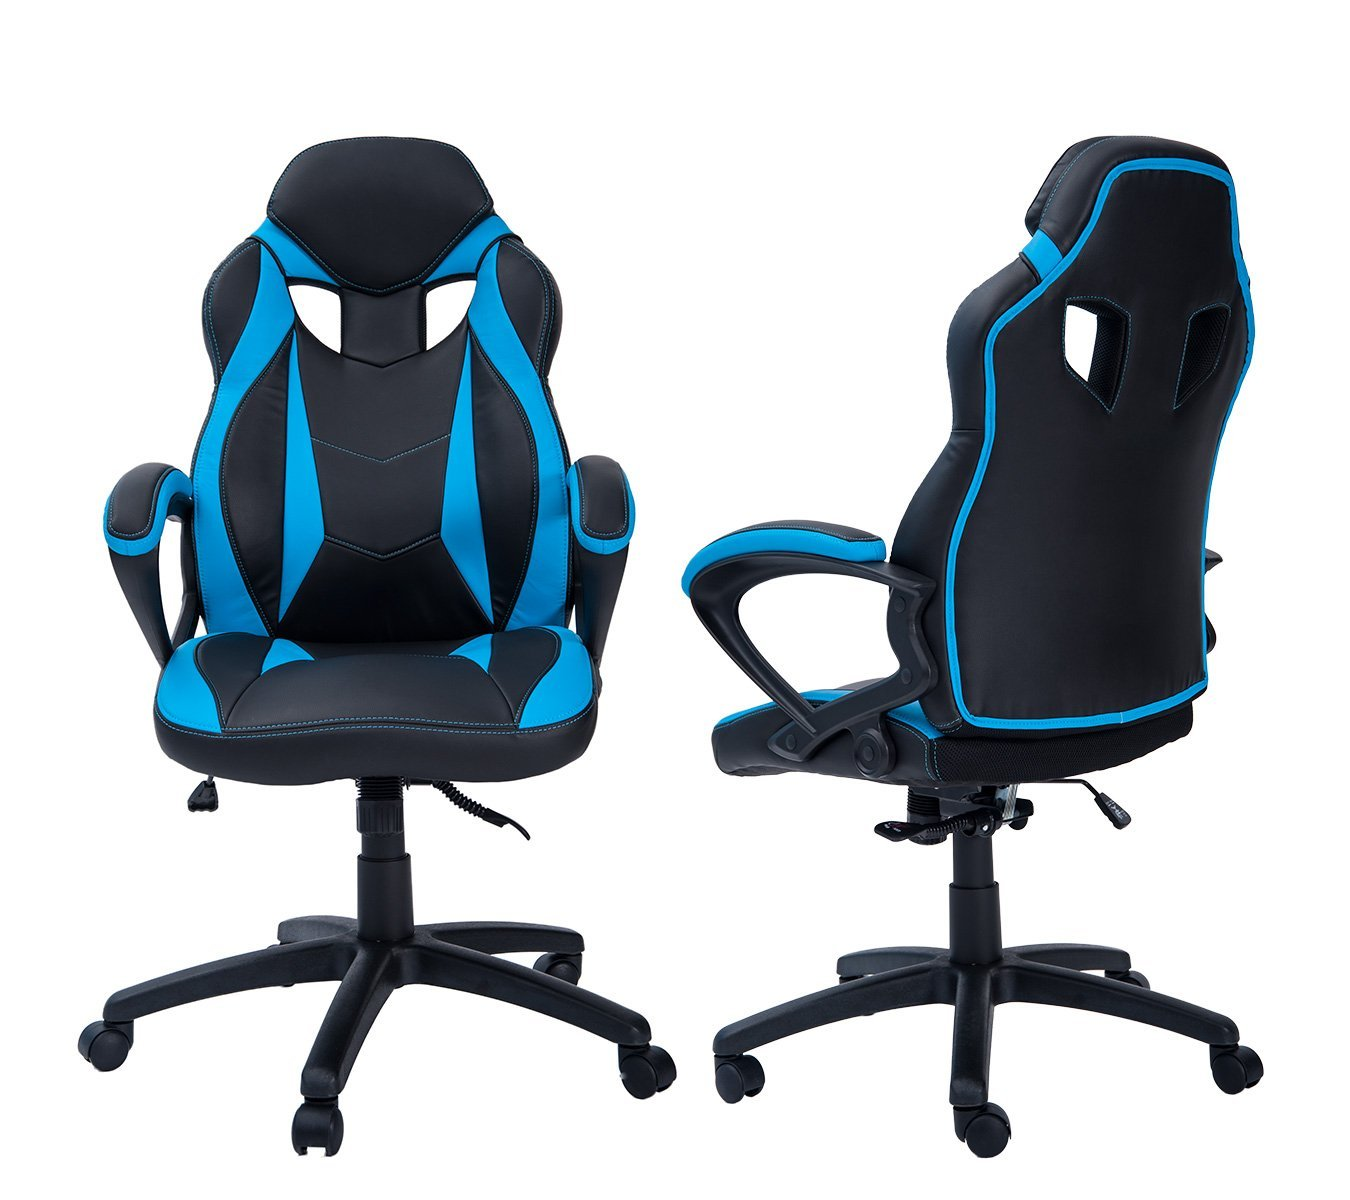 best video game chair star wars office cheap gaming chairs merax ergonomics review